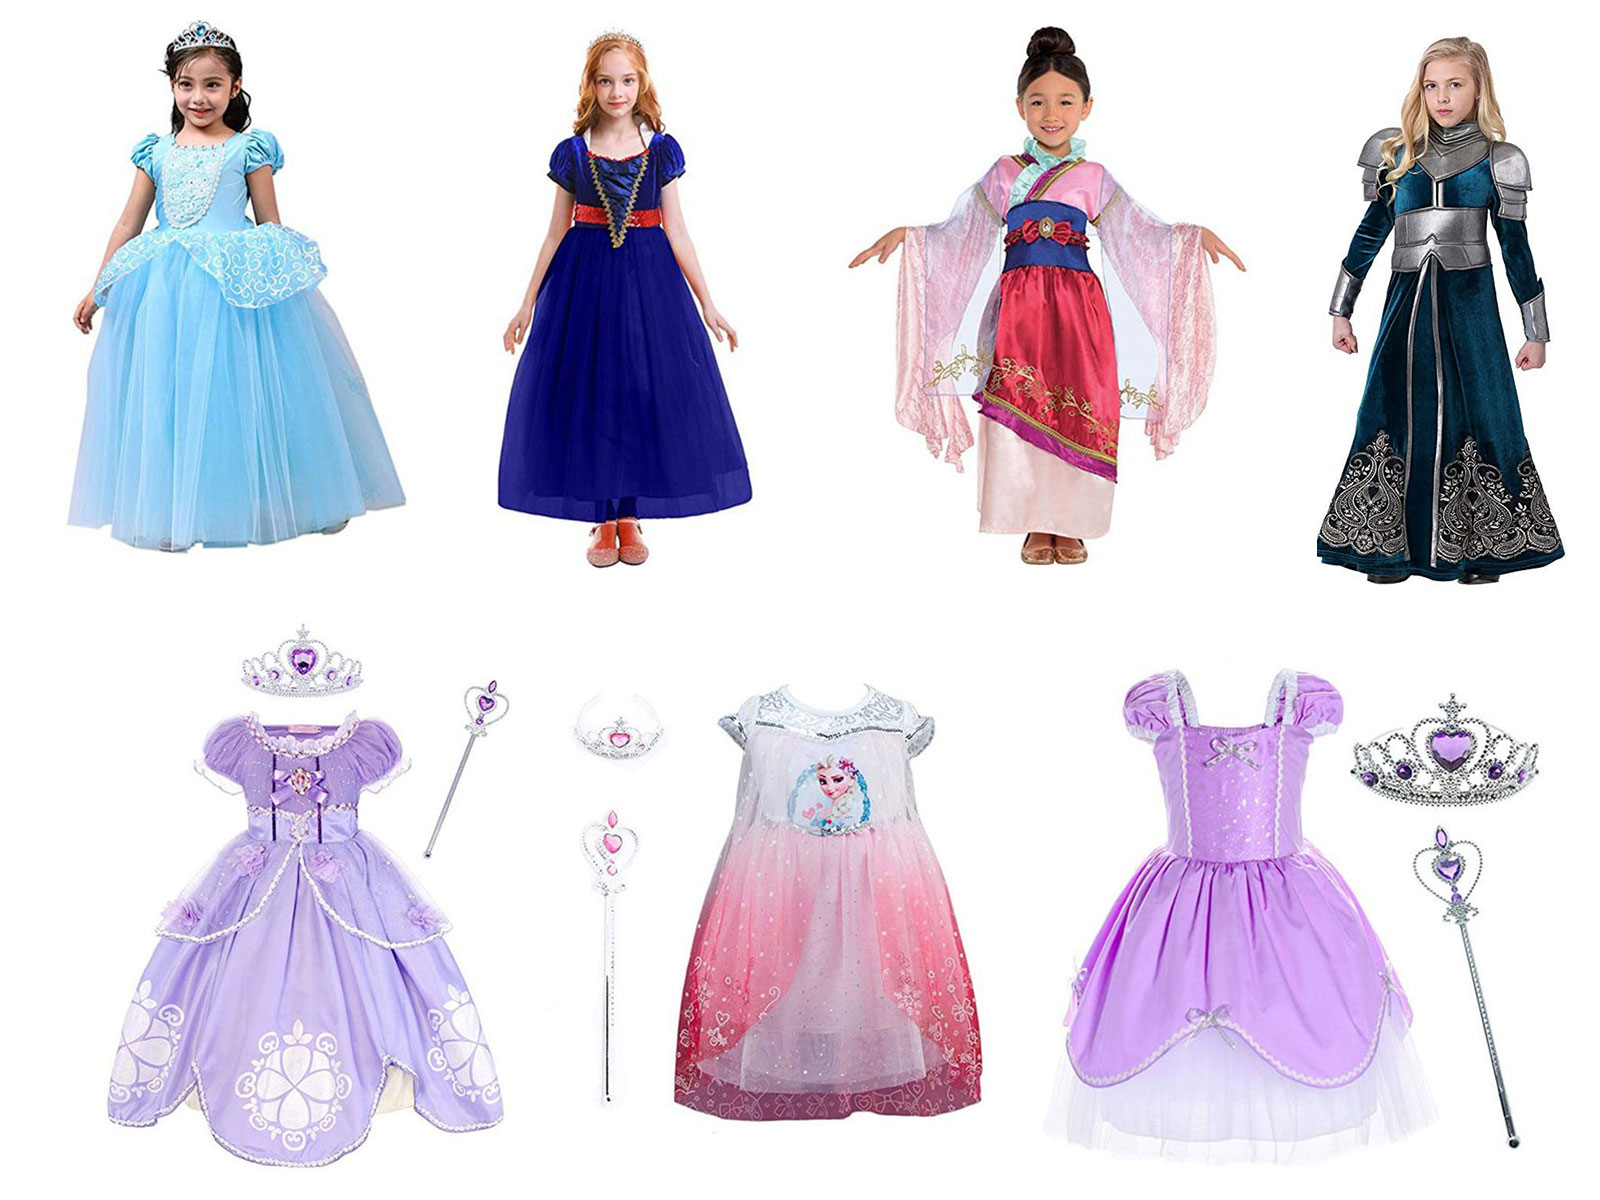 18-Cute-Cheap-Halloween-Princess-Costume-Ideas-For-Kids-Girls-2019-F